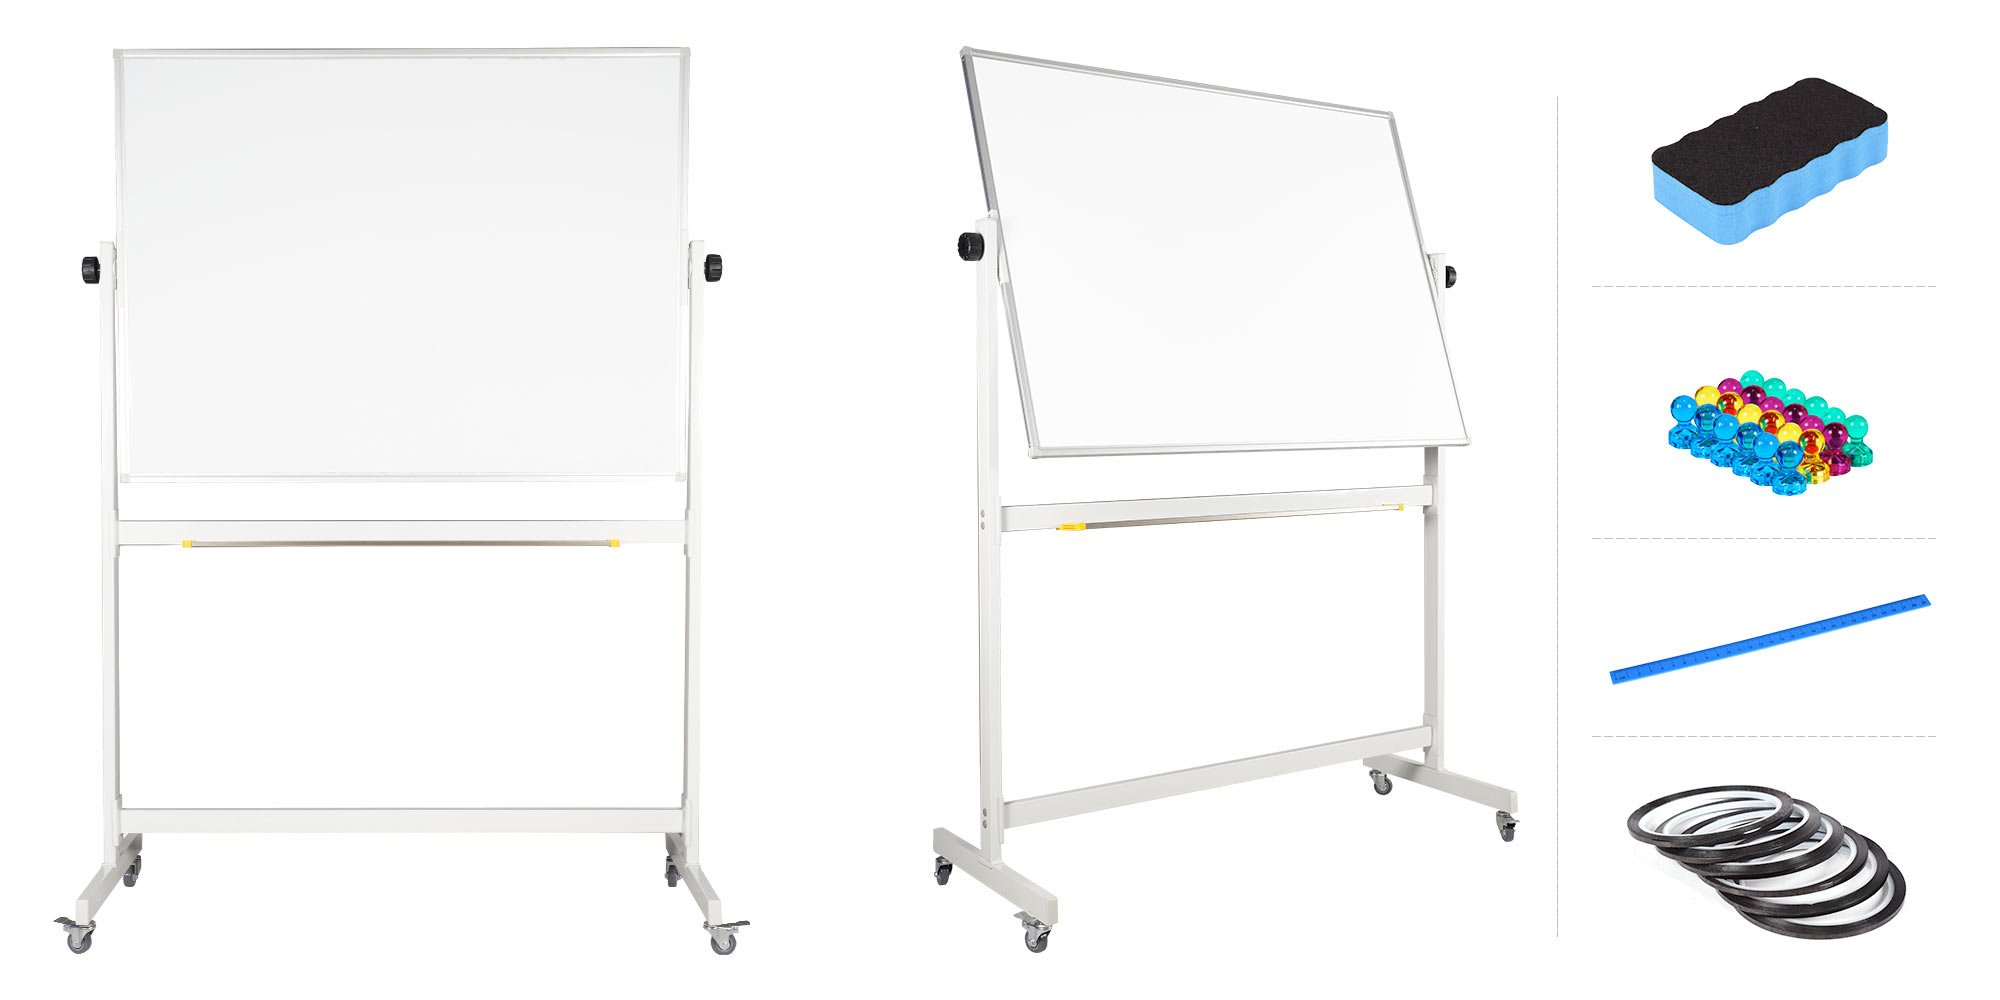 Mobile Whiteboard 36'' x 48'' inch Magnetic Double Sided Flip Over Dry Erase Reversible Portable Home Office Classroom Board with Magnetic Eraser Ruler 24 Push Pin Magnets 6 Gridding tapes